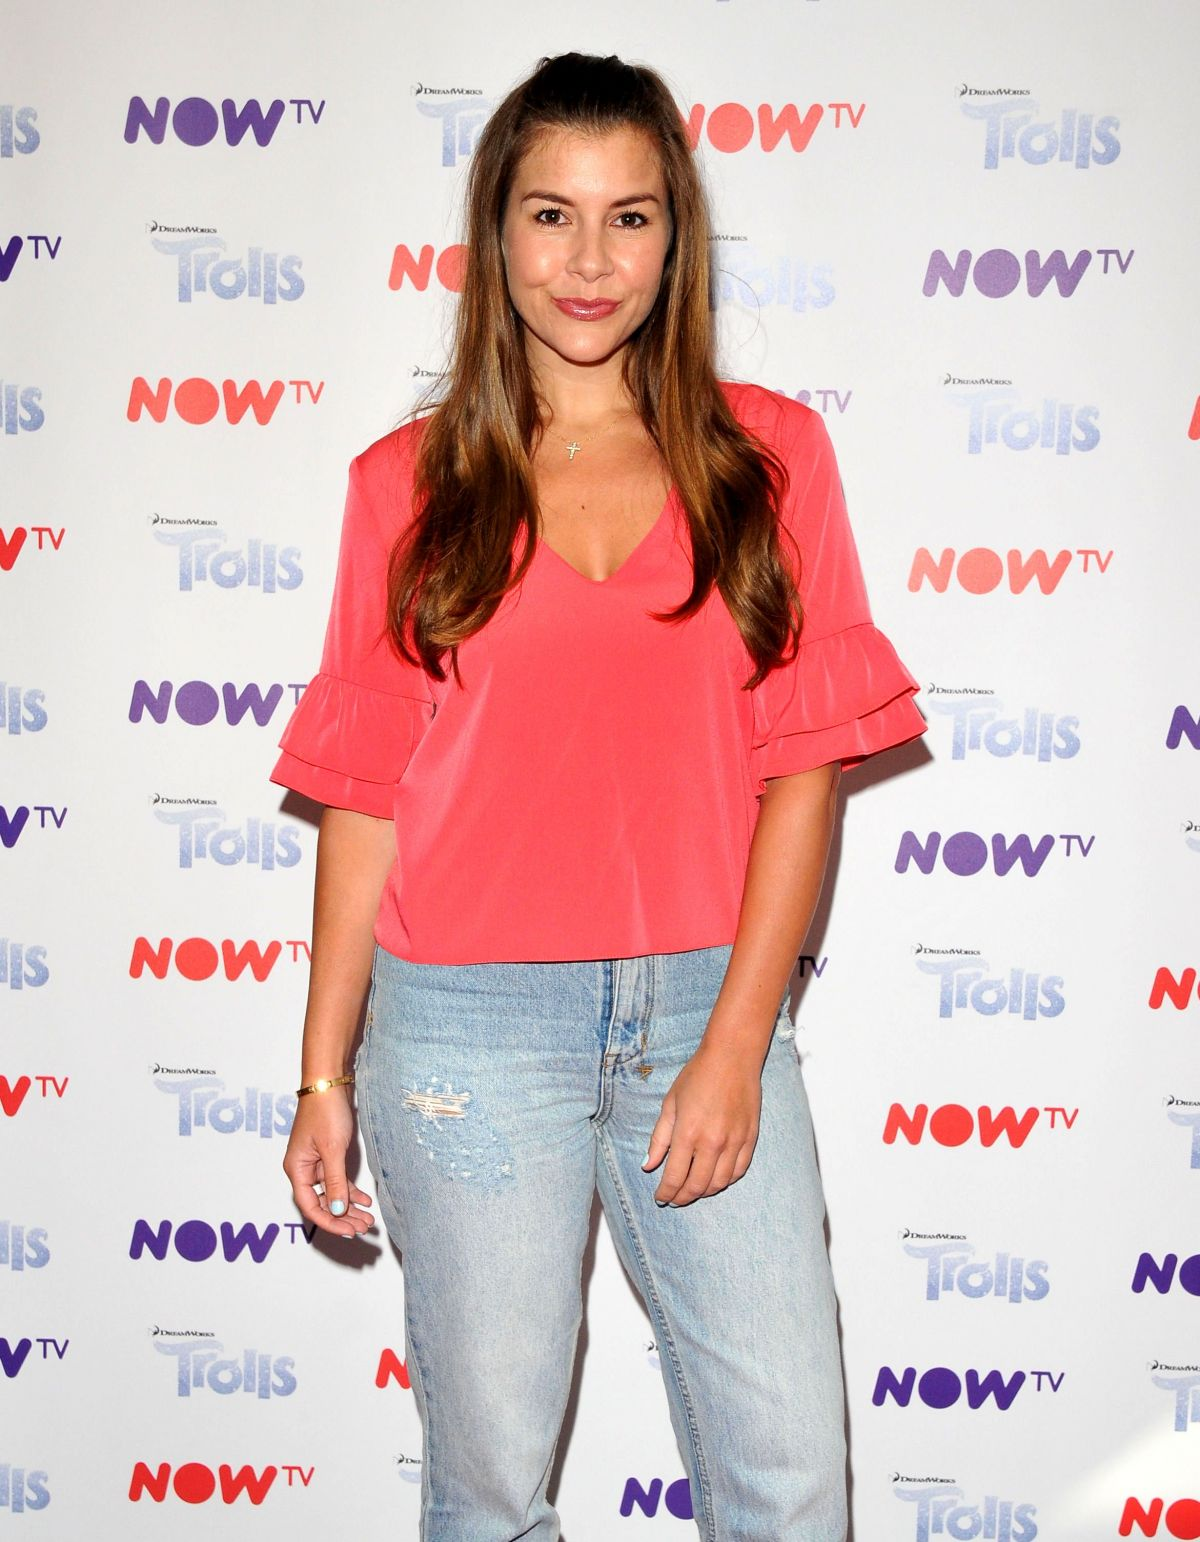 IMOGEN THOMAS at Now TV Pop-up Troll Beauty Salon VIP Launch in London 09/02/2017